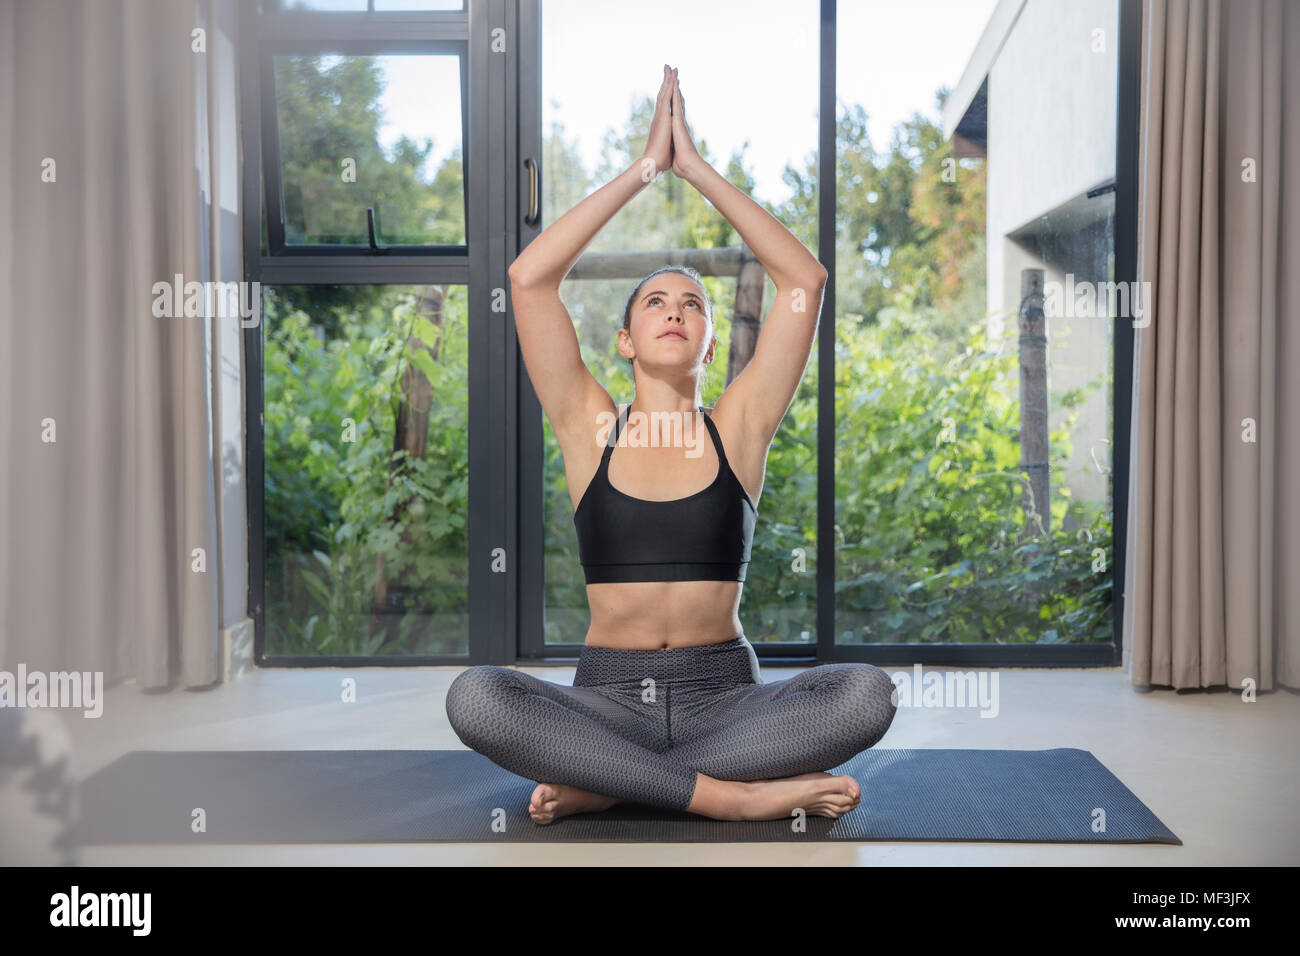 Young woman doing yoga exercise at the window - Stock Image